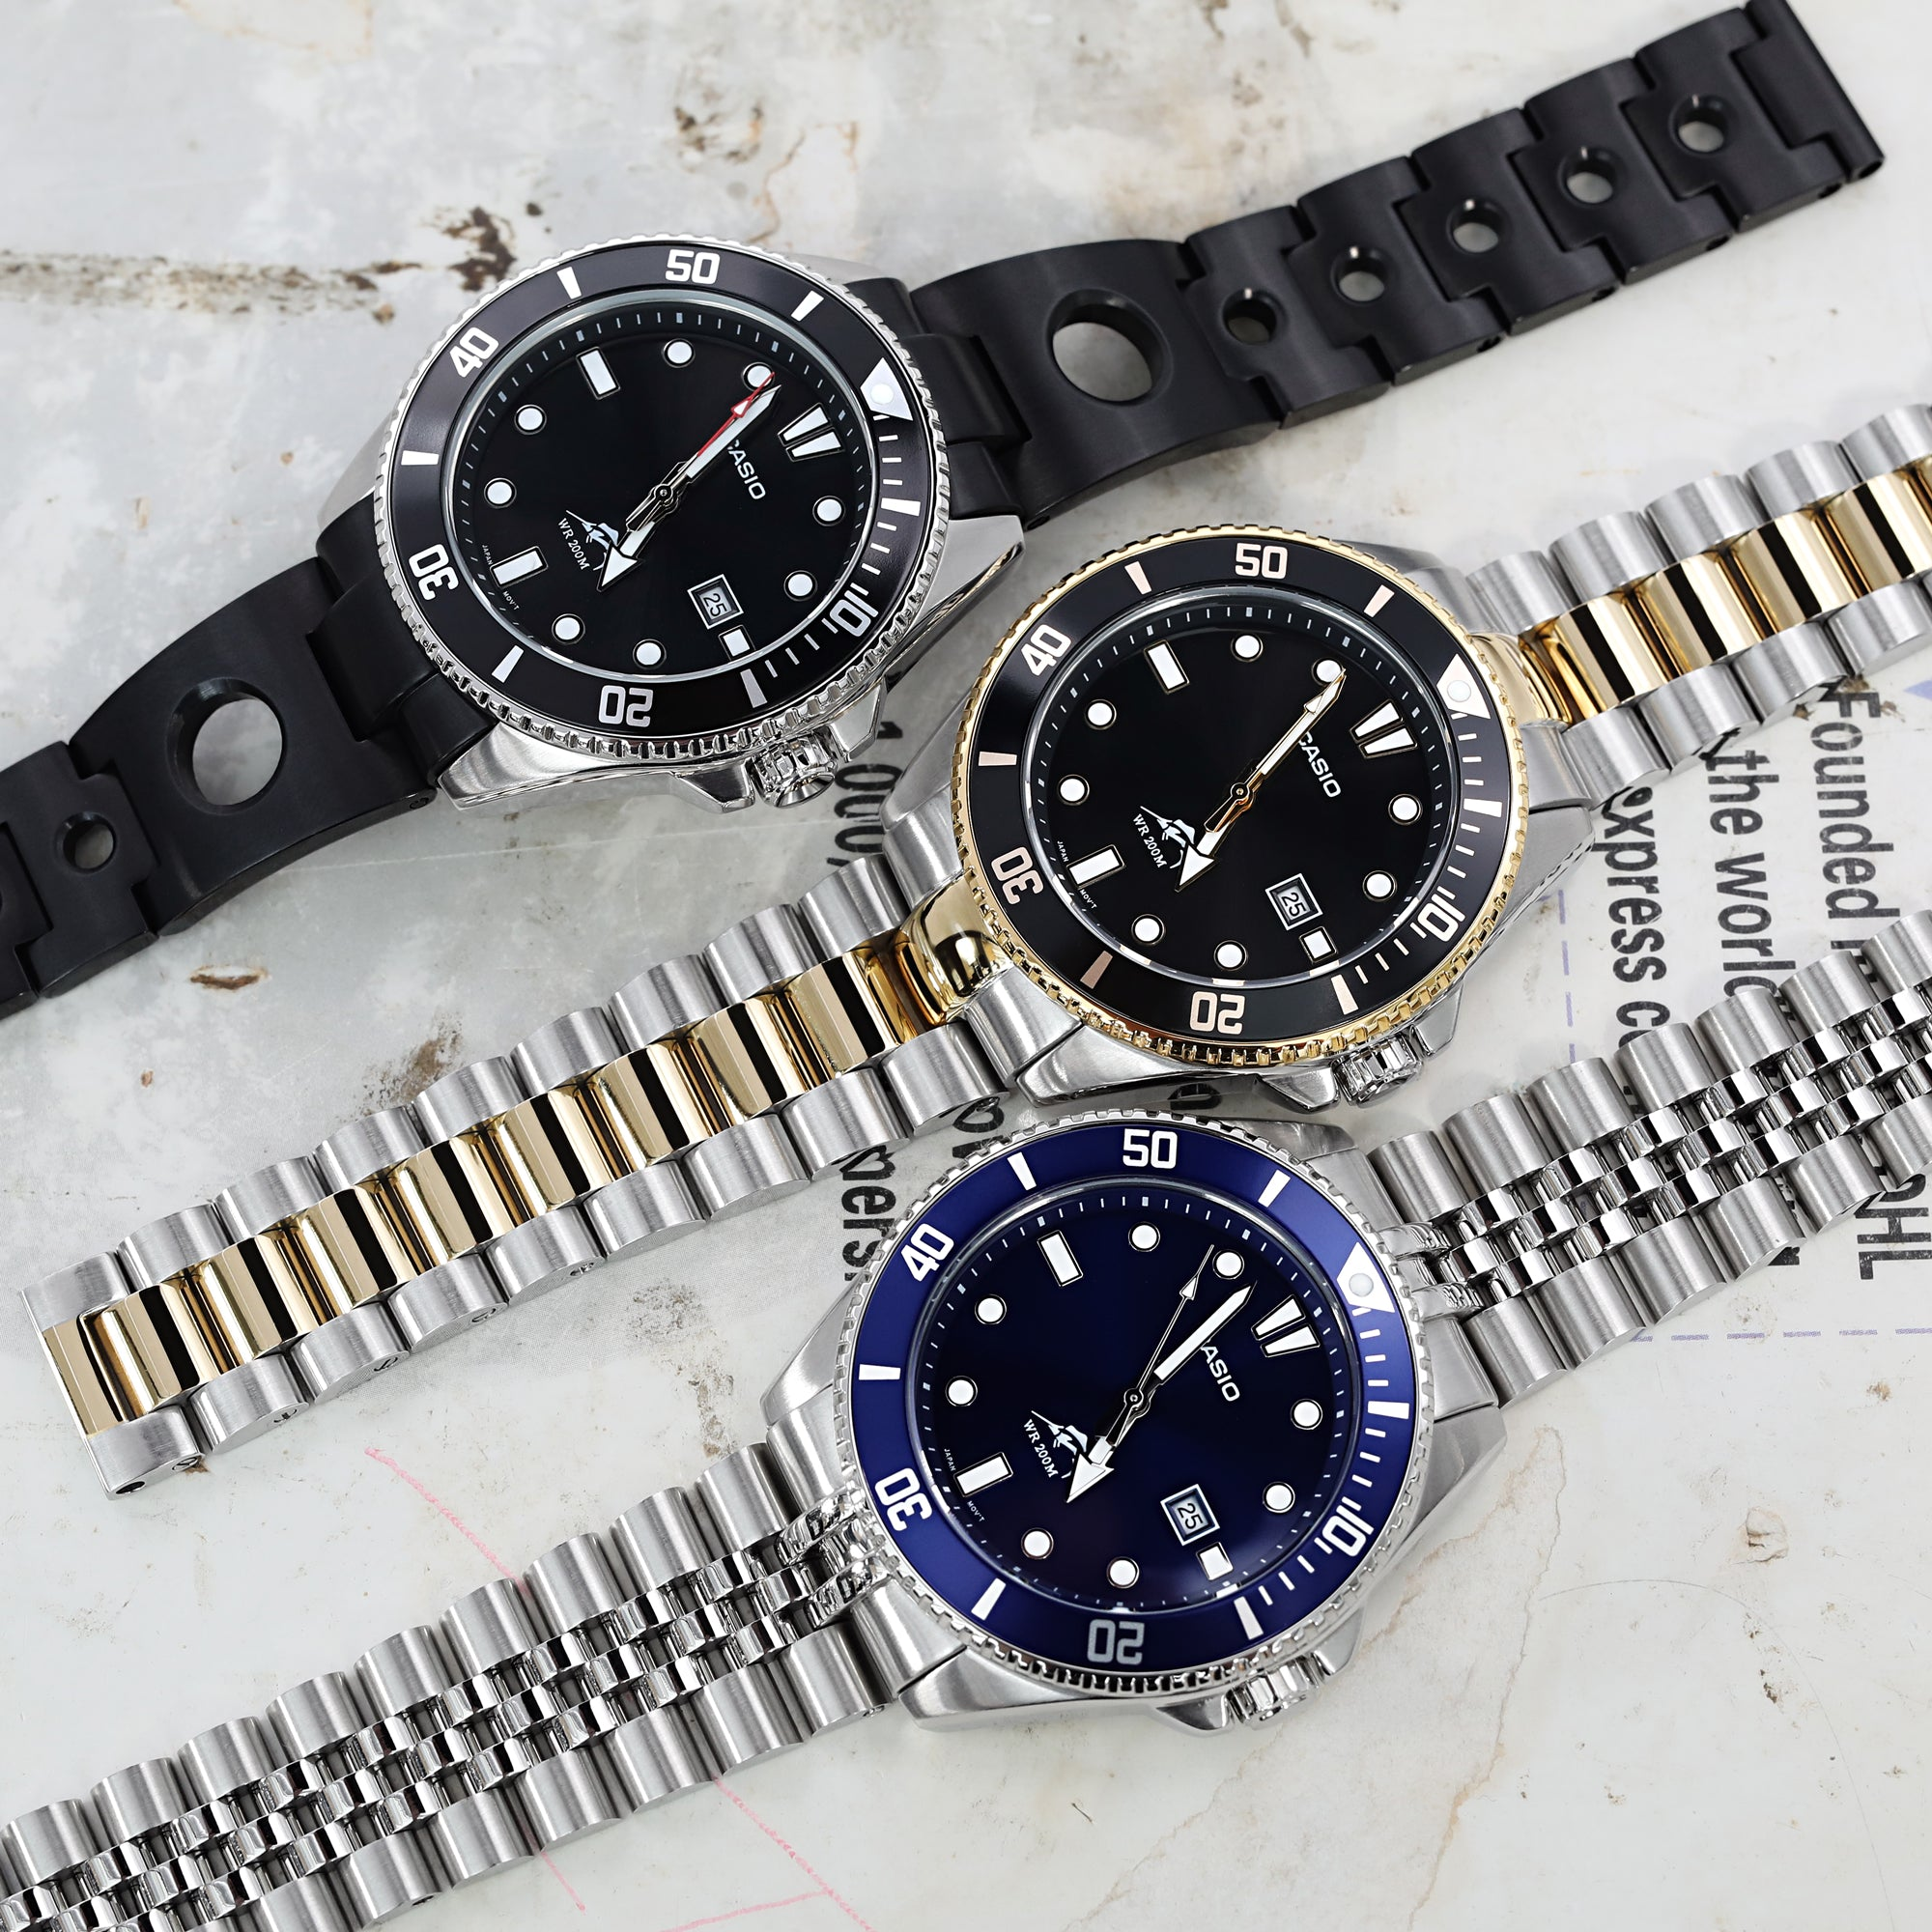 Group of Casio Duro 200mm MDV106 Analog Watches